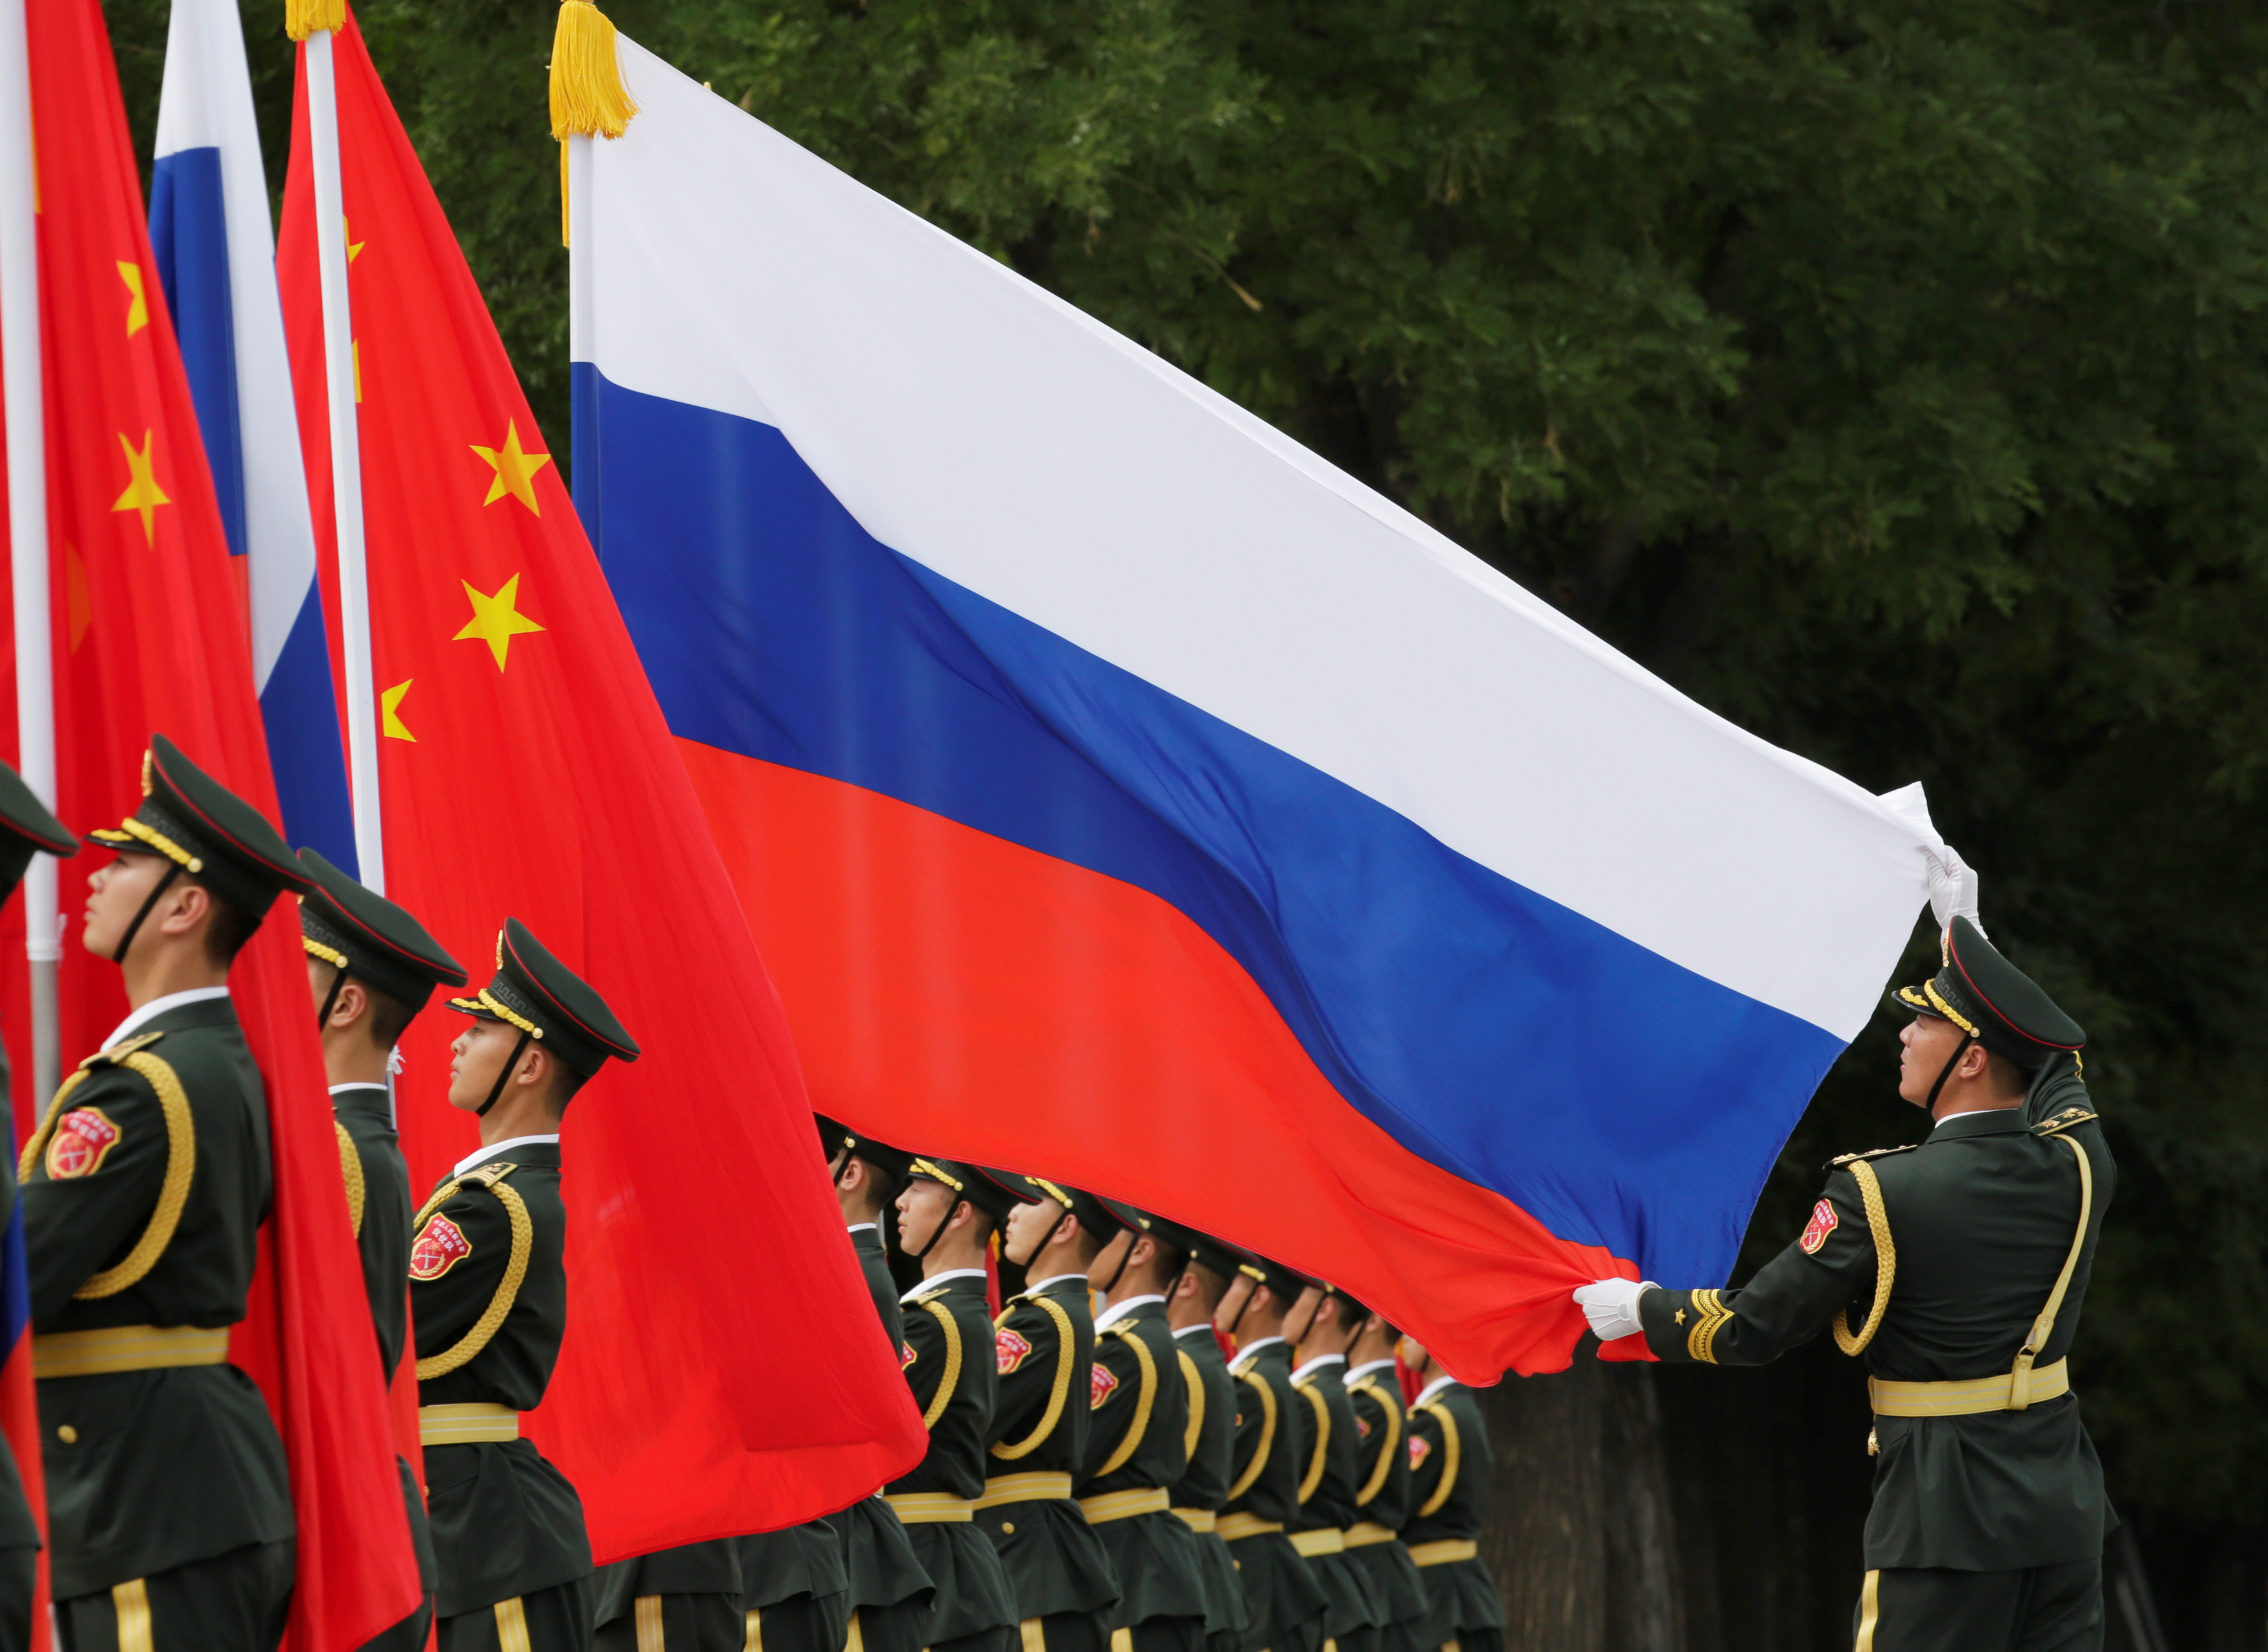 China, Russia and the United States contest a new world order